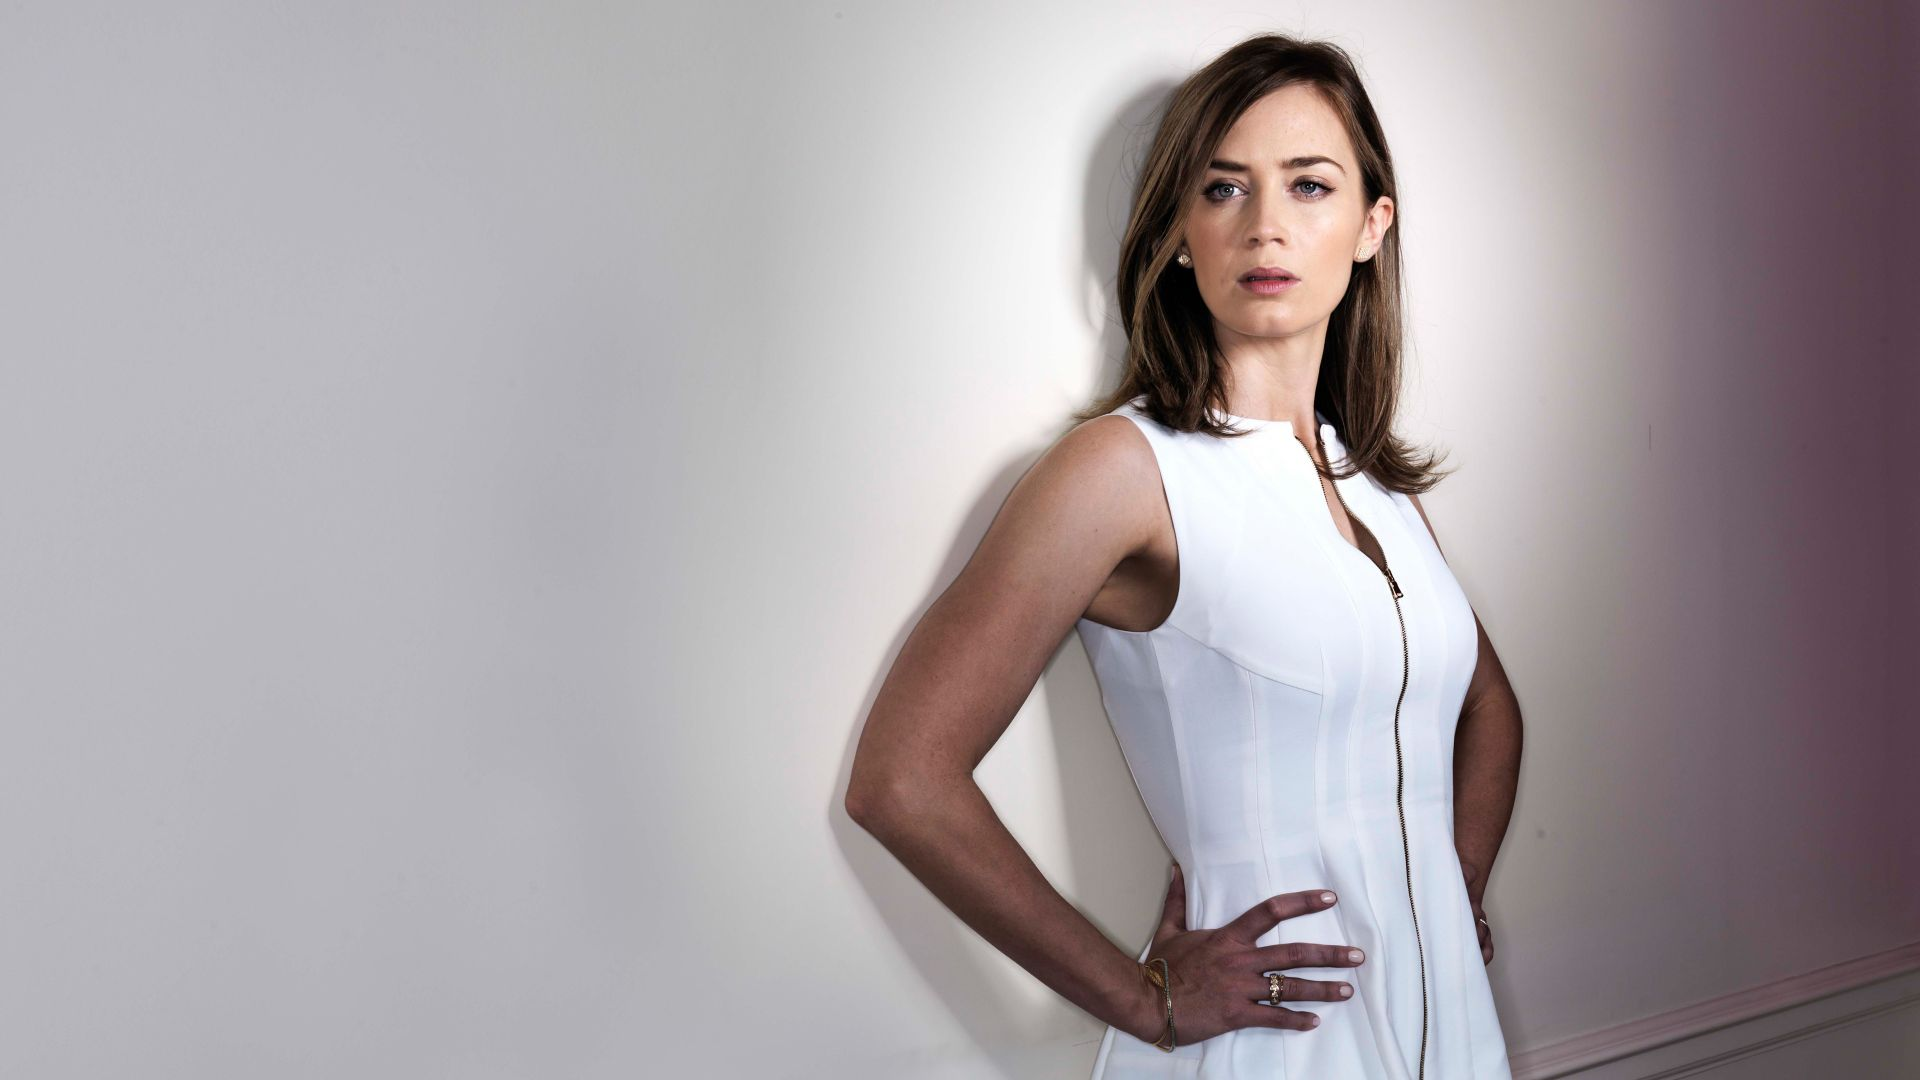 Emily Blunt, beauty, 5k (horizontal)